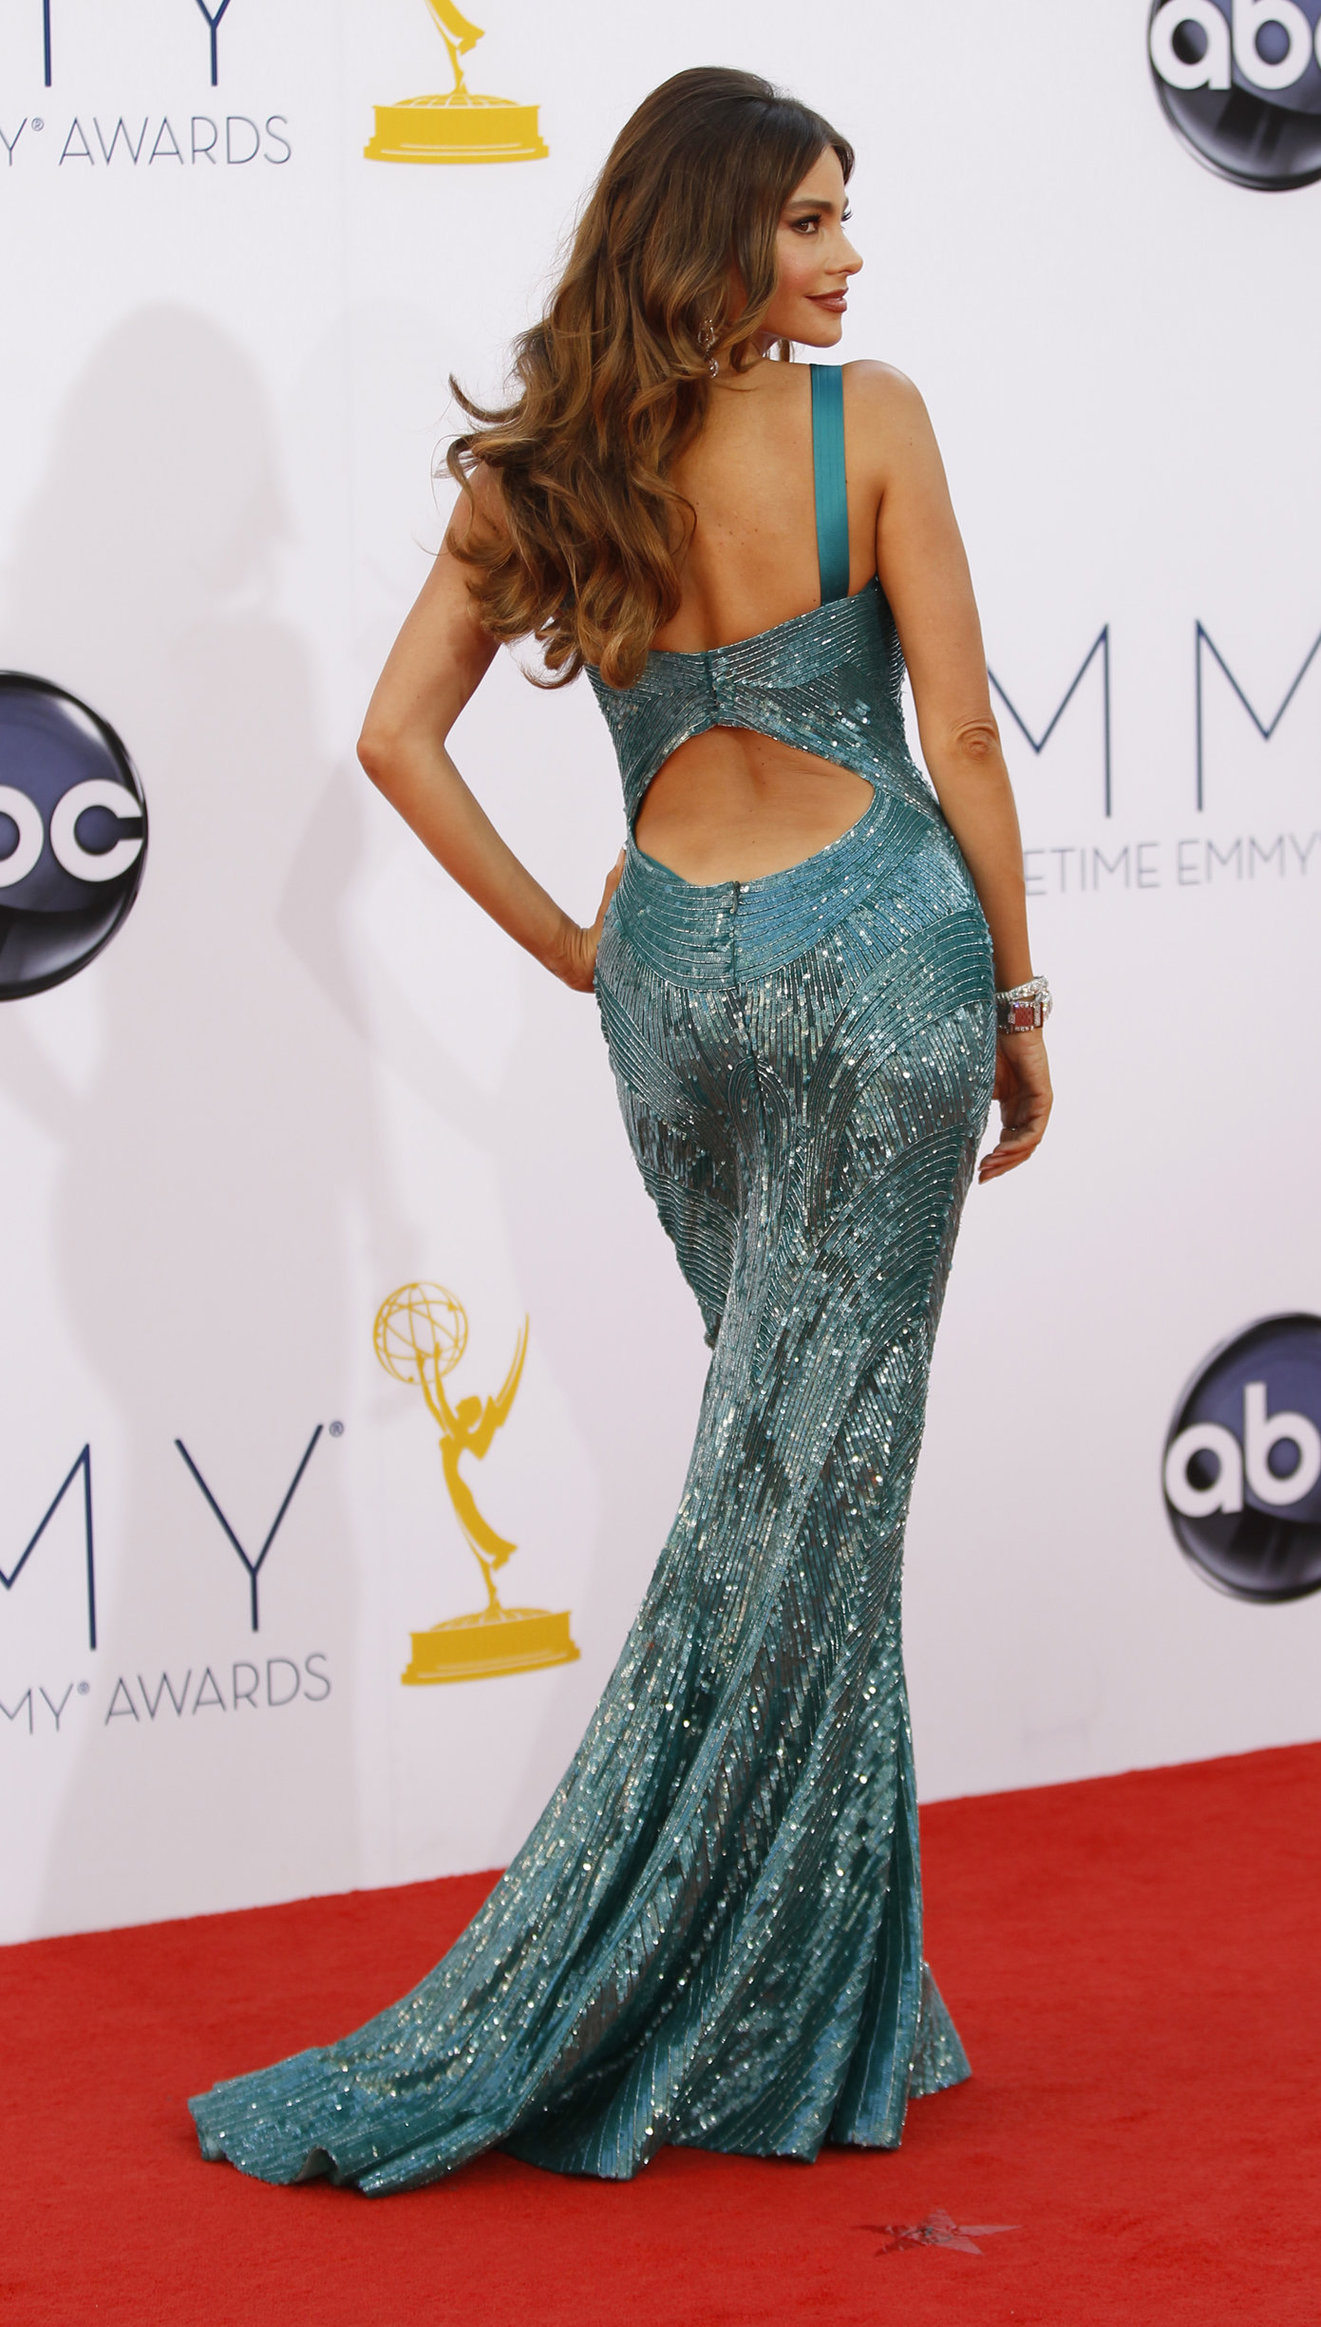 Sofia Vergara - HBO's Official Emmy After Party at The Plaza in Hollywood, September 23, 2012